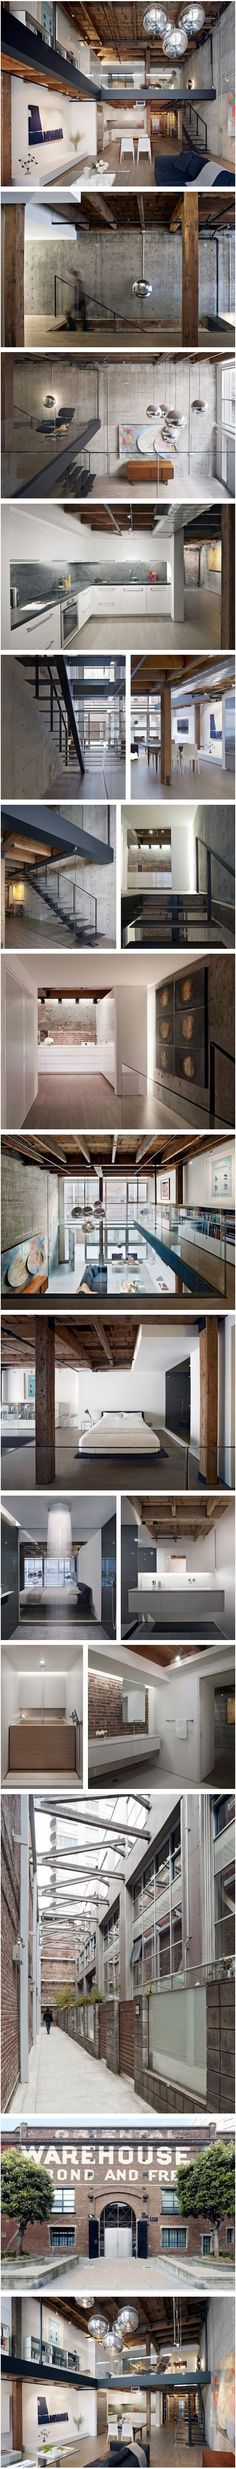 Renovated Oriental Warehouse | Zeutch - awesome!